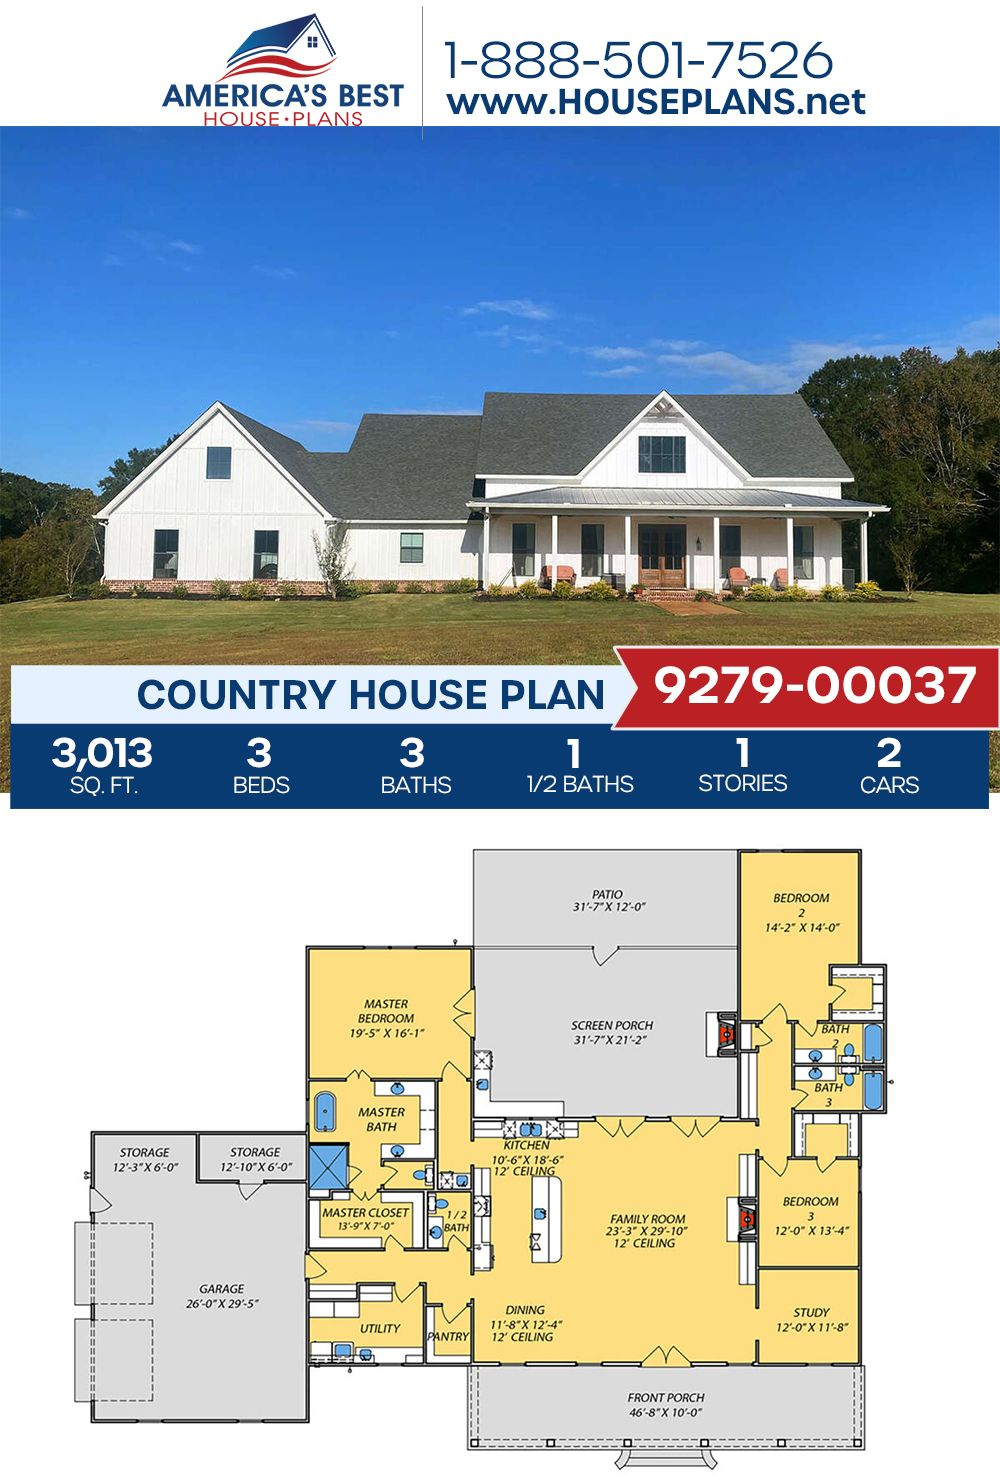 House Plan 9279 00037 Country Plan 3 013 Square Feet 3 Bedrooms 3 5 Bathrooms House Plans Country House Design Country House Plans